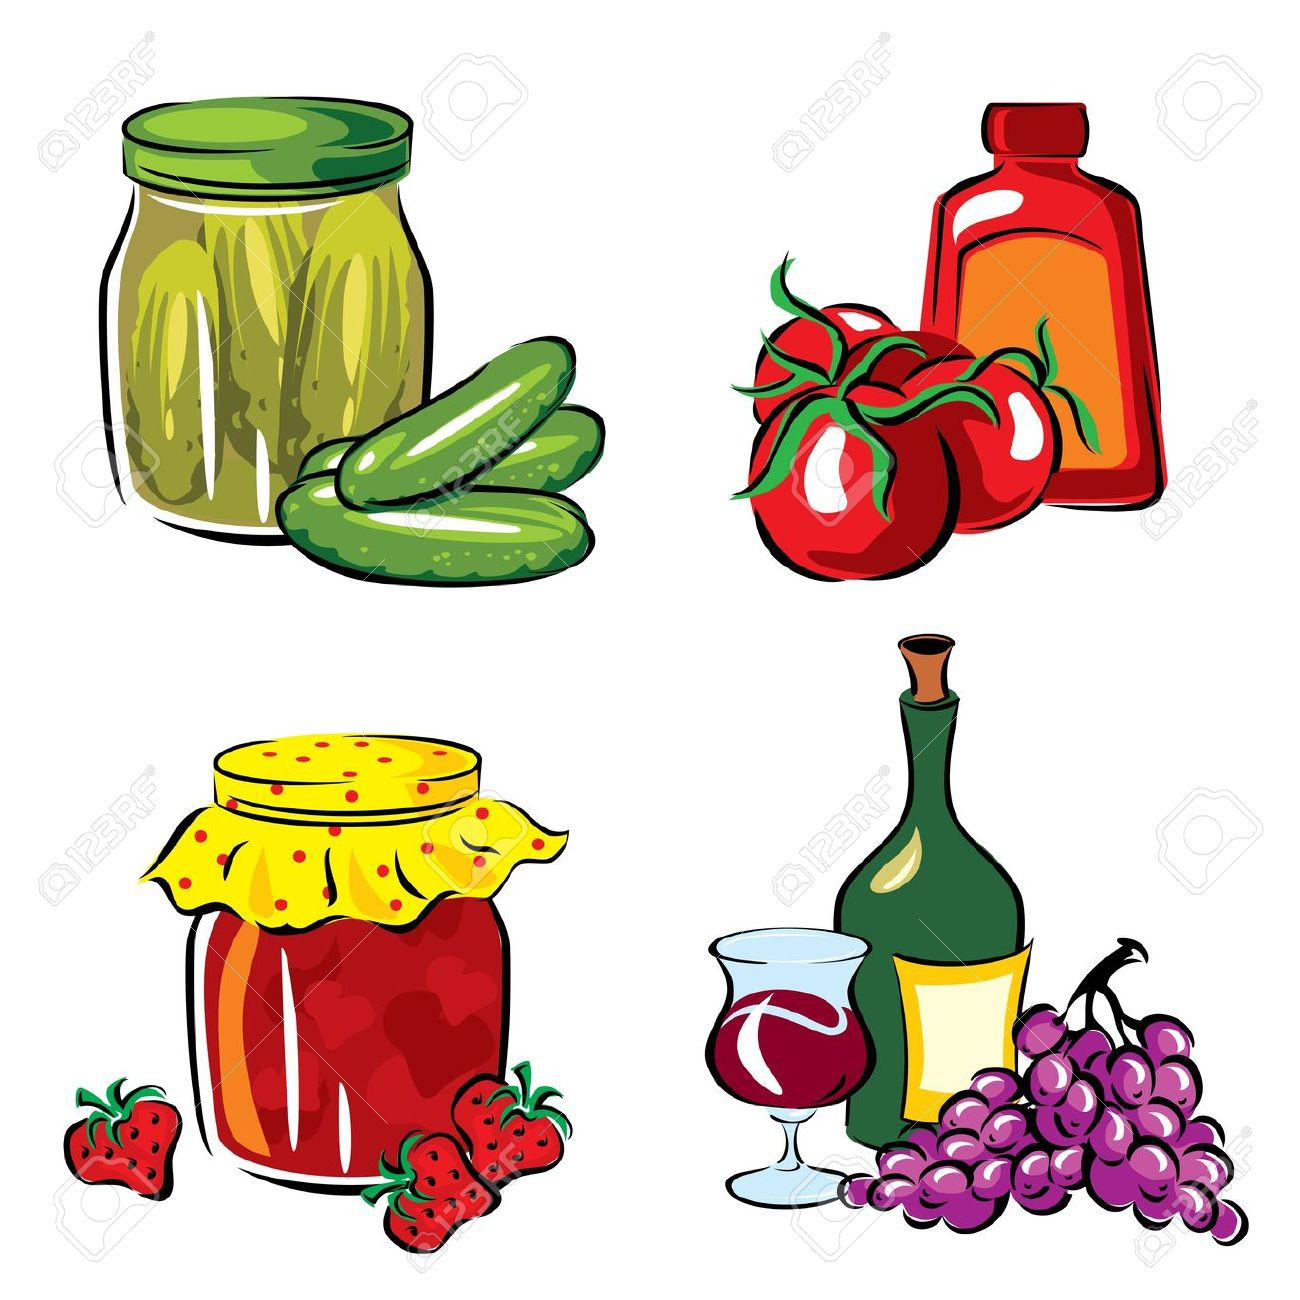 Food manufacturing clipart.